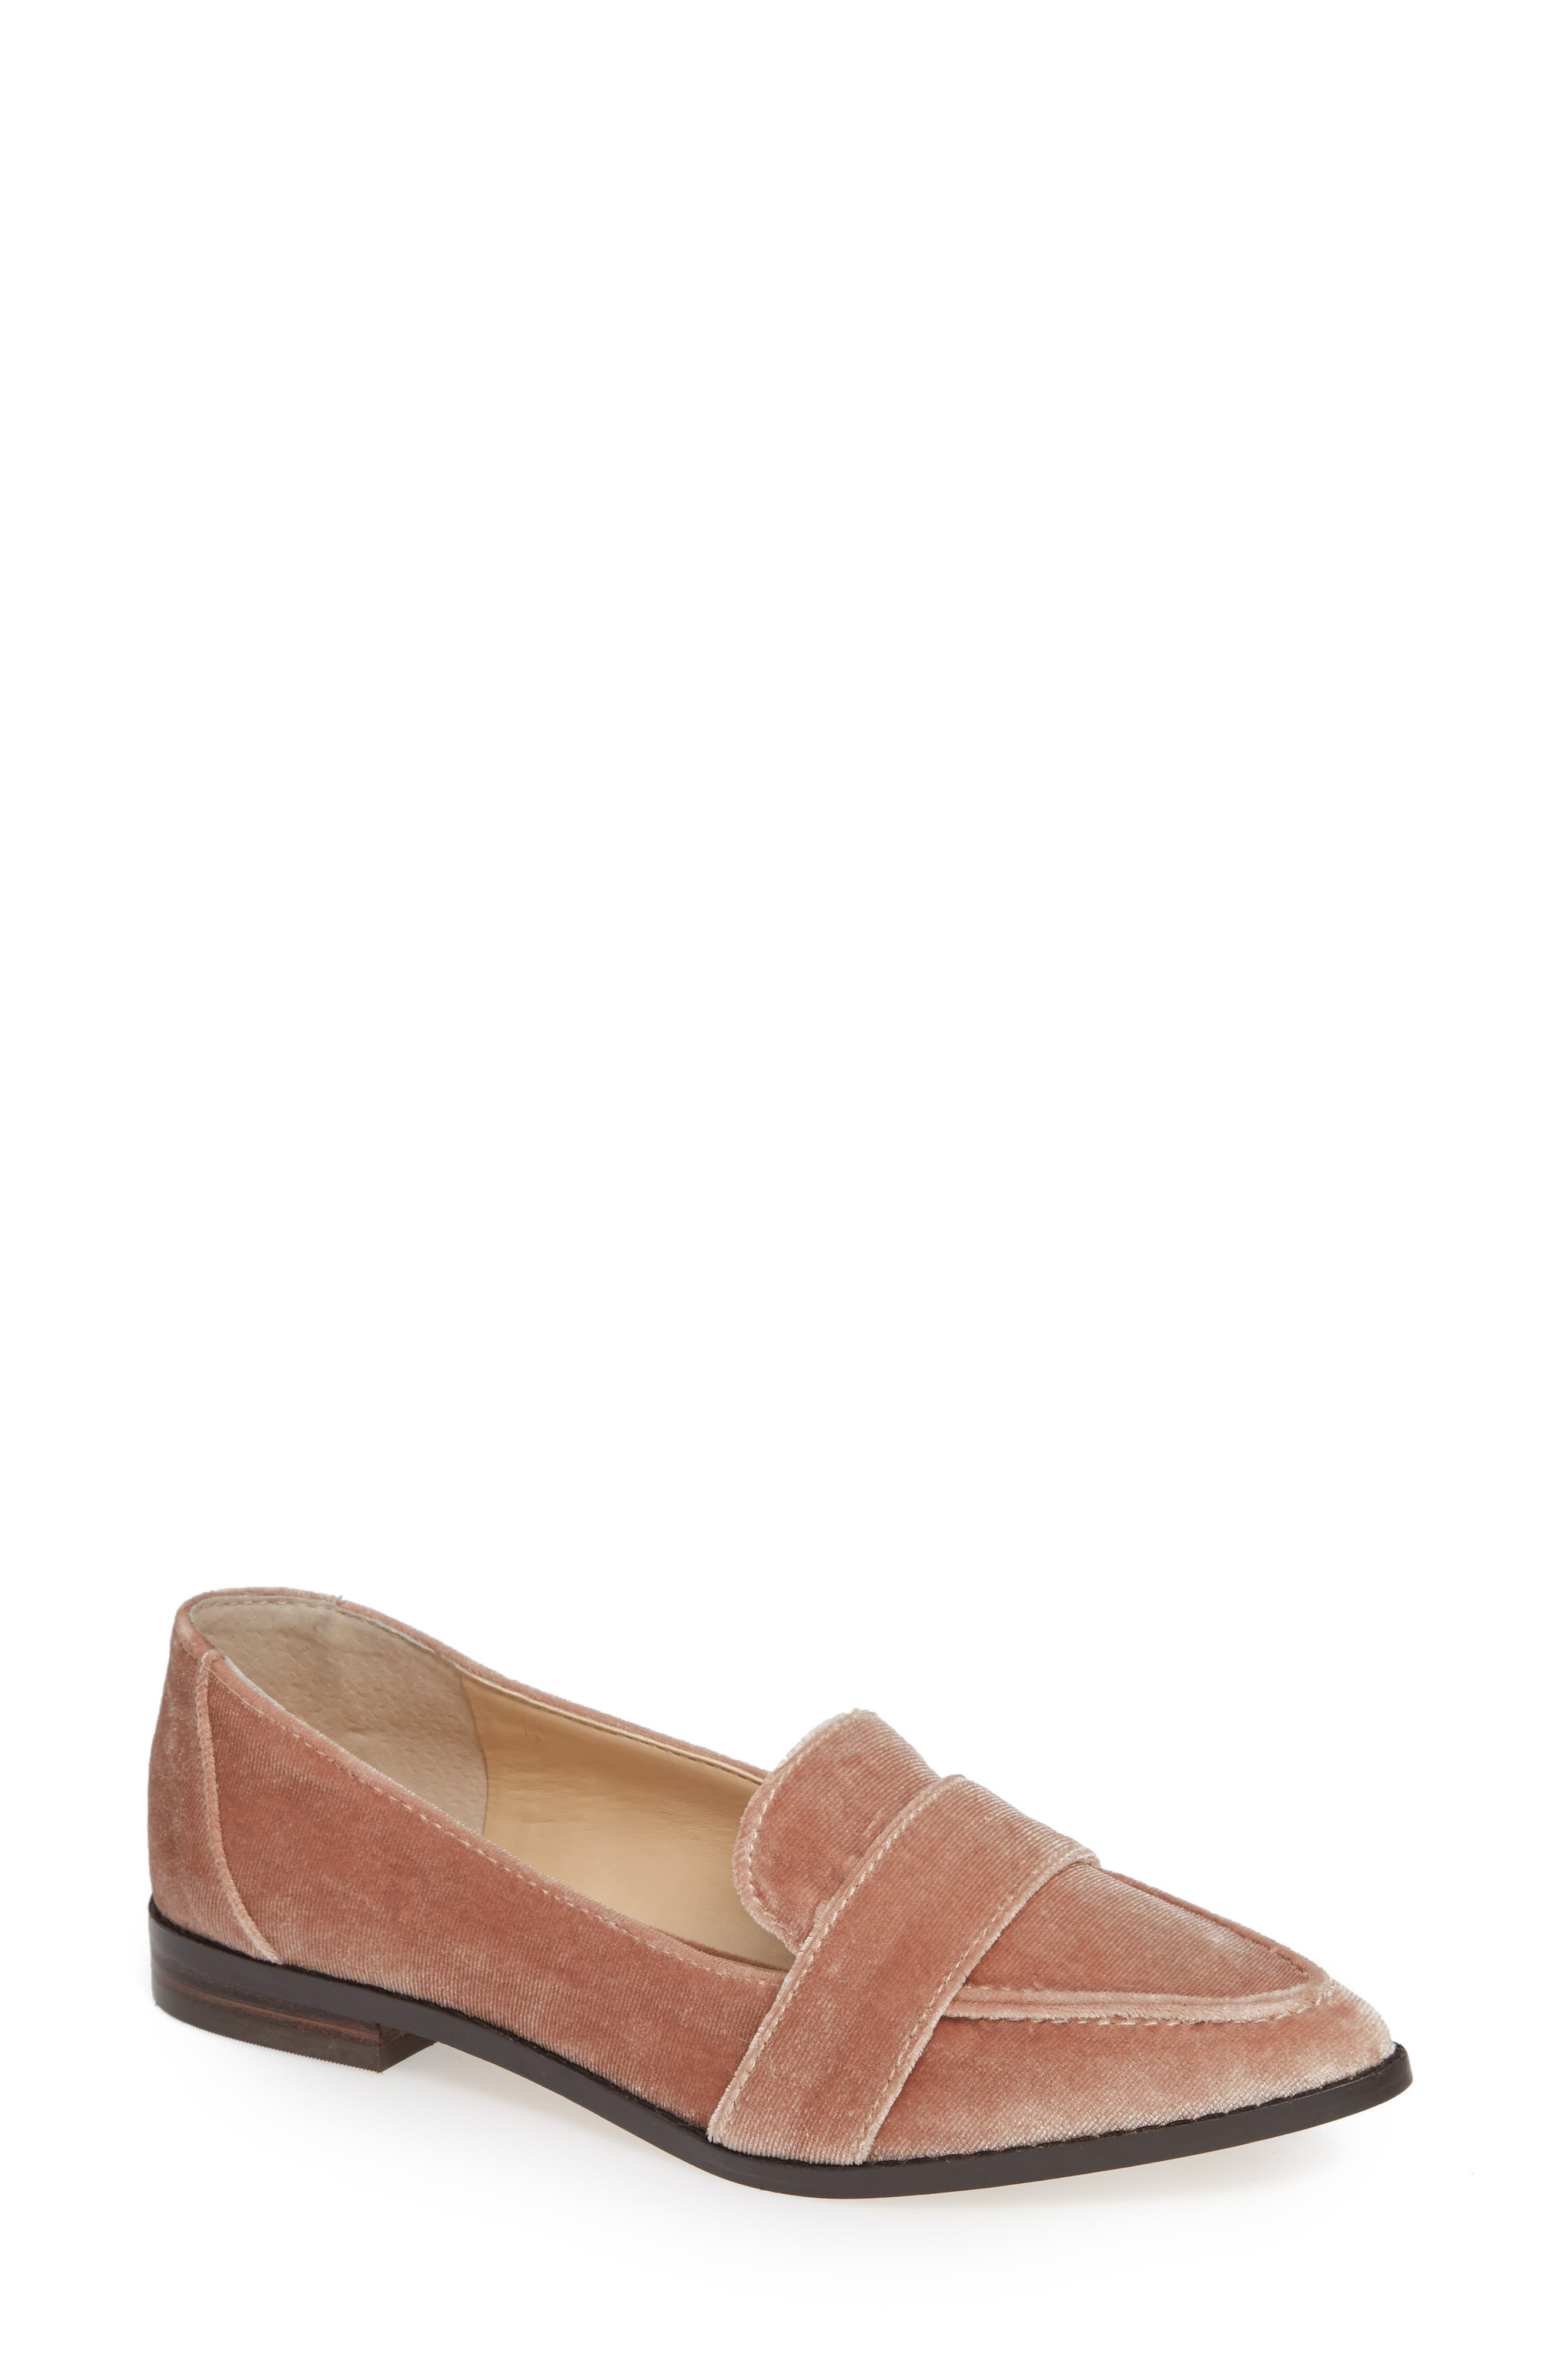 SOLE SOCIETY Edie Pointy Toe Loafer, Main, color, 682